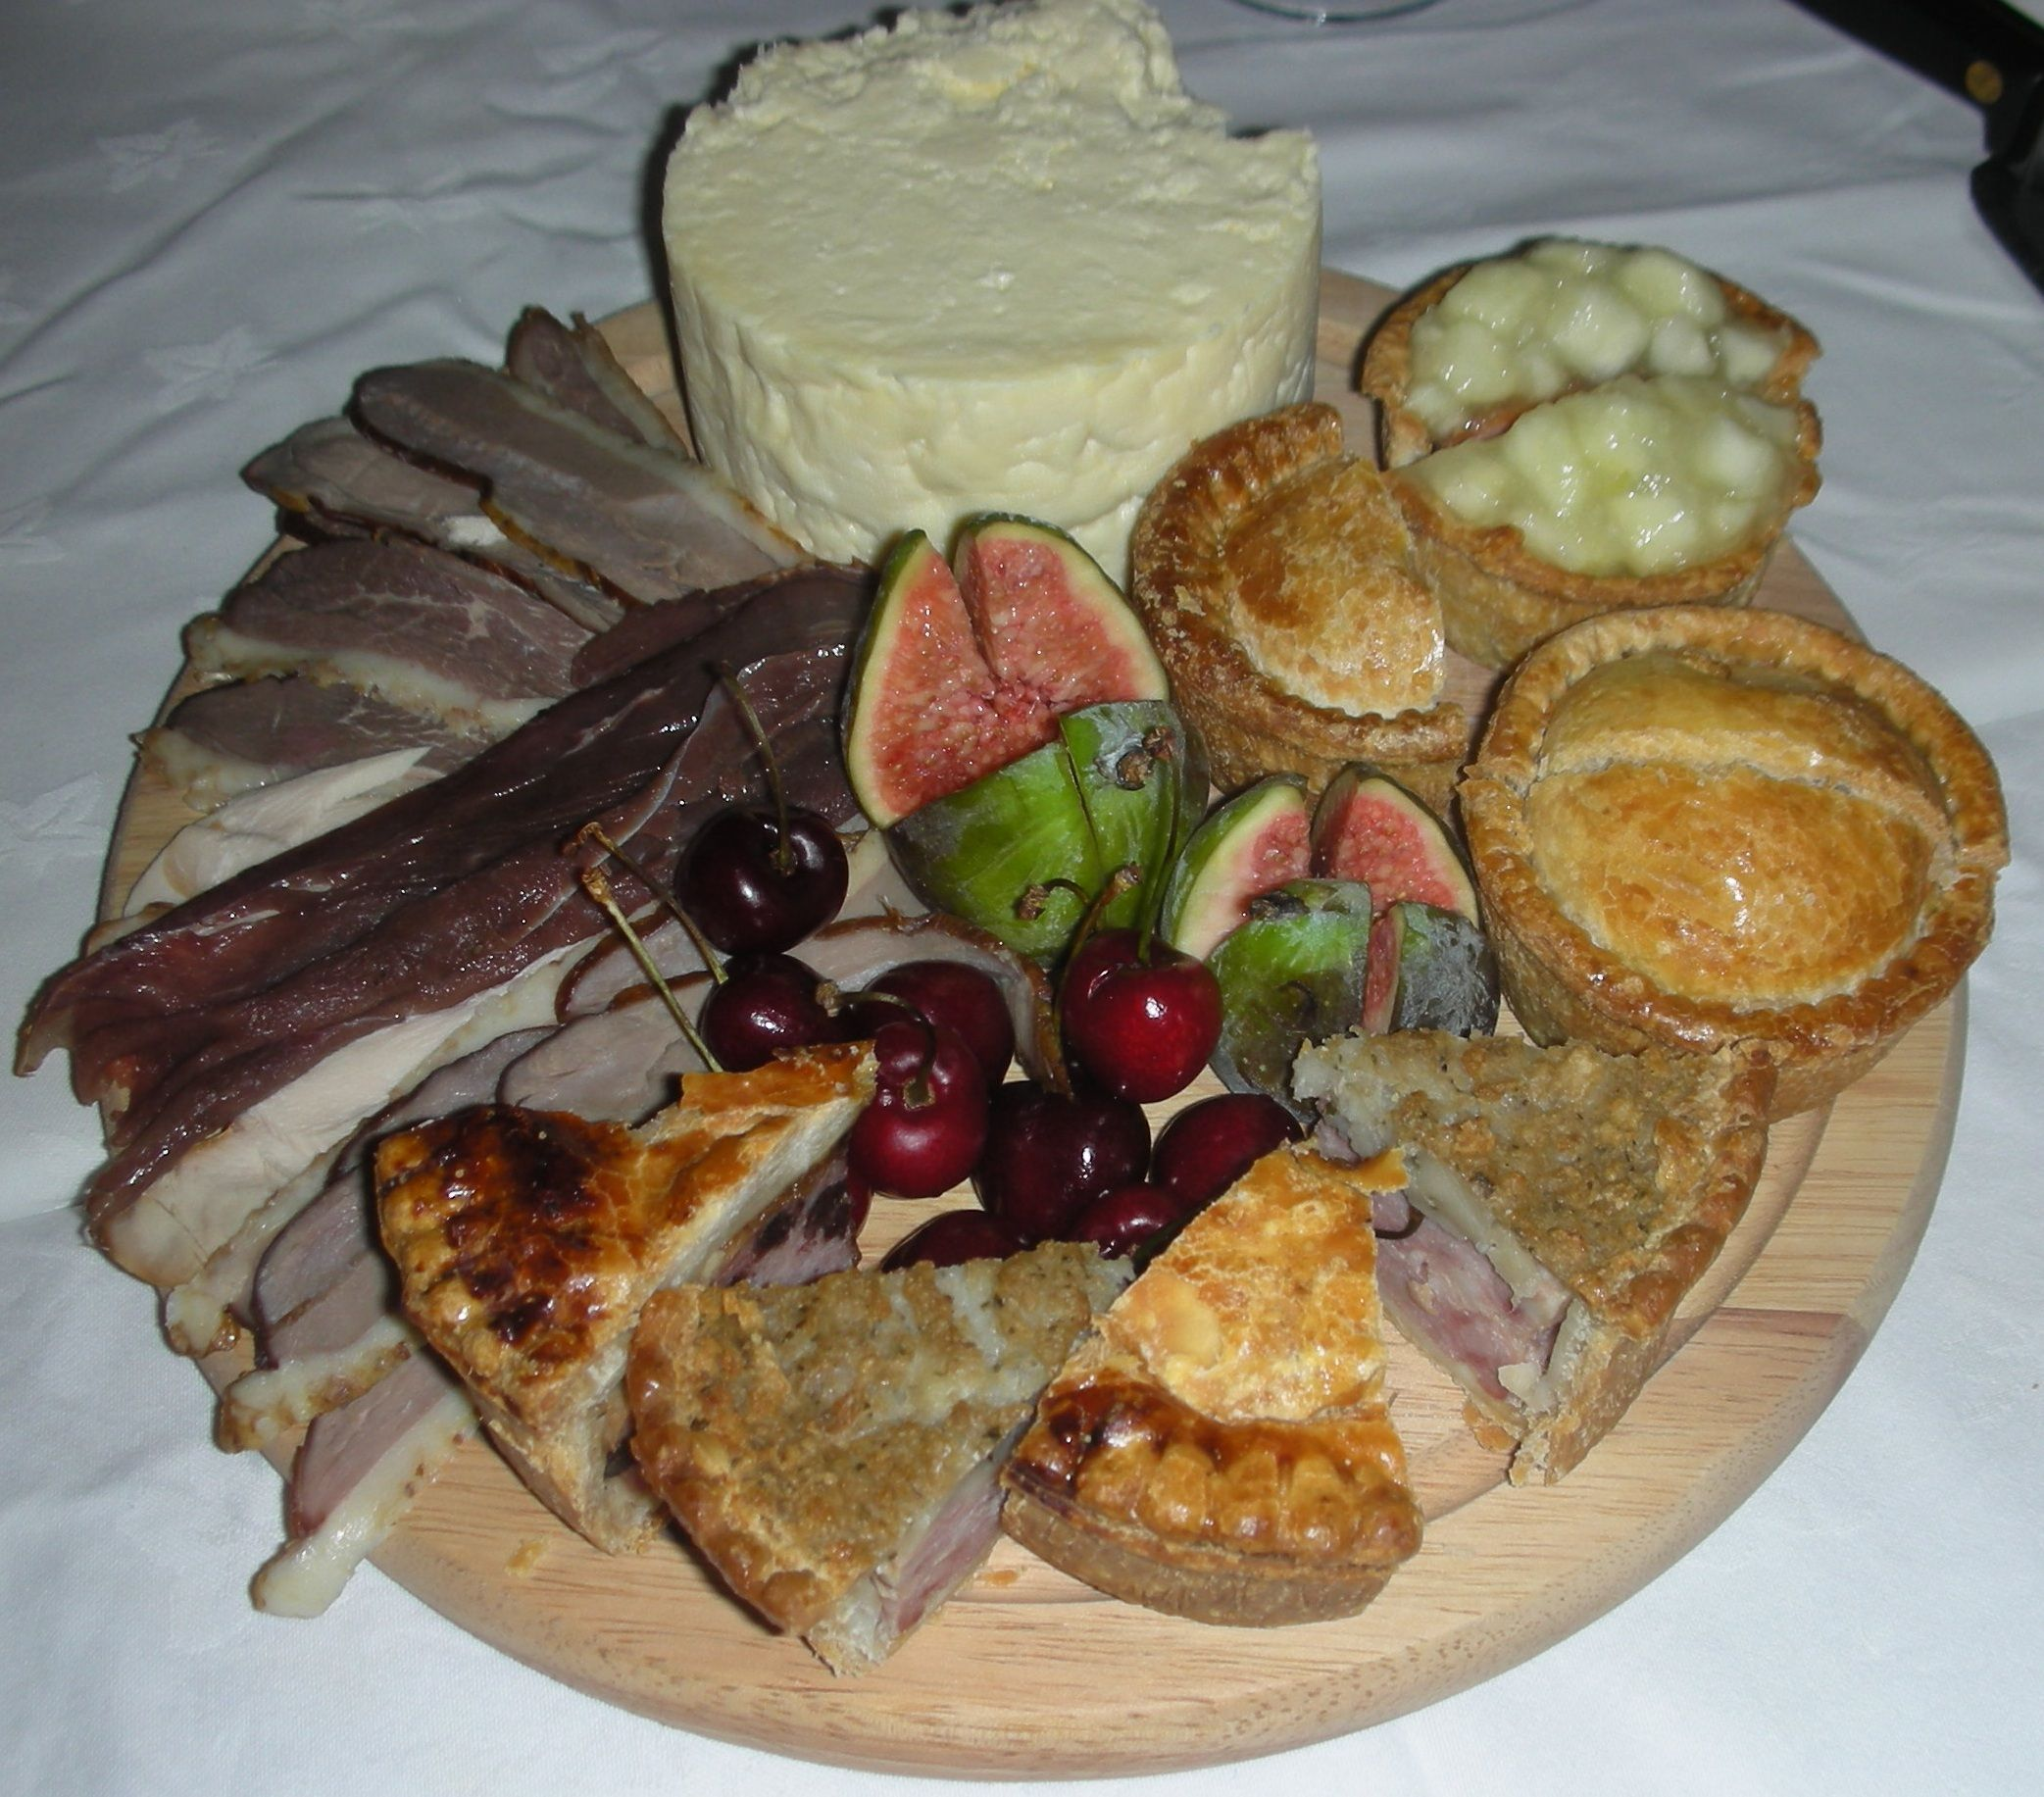 medieval food recipes bread cheese fish fruit renaissance ages middle pies lunch pie meat platter feast banquet ancient fantasy platters